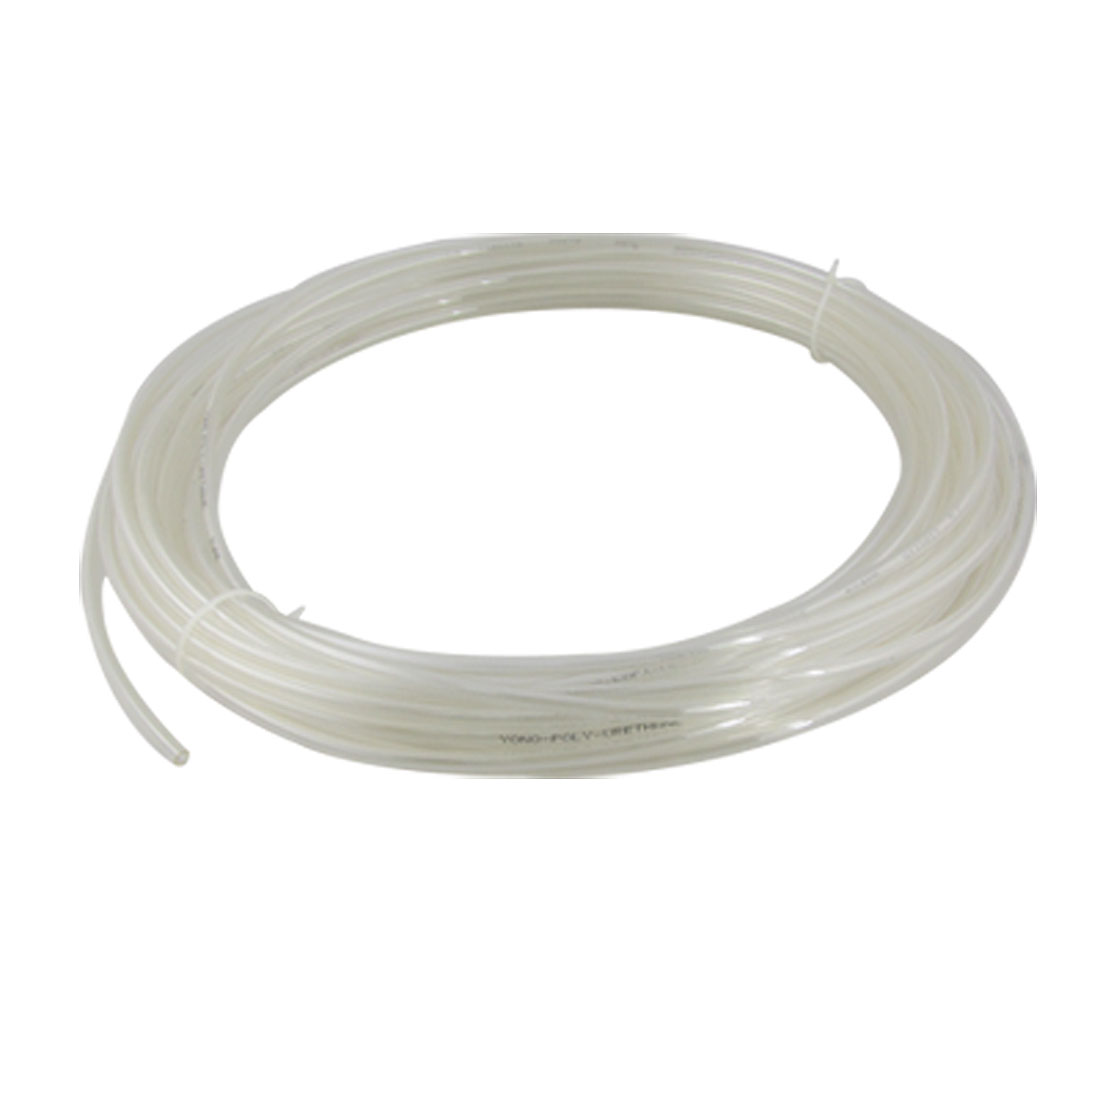 Unique Bargains Transparent 6mm OD 4mm ID 20M 65.6Ft Pneumatic PU Air Tube Hose at Sears.com